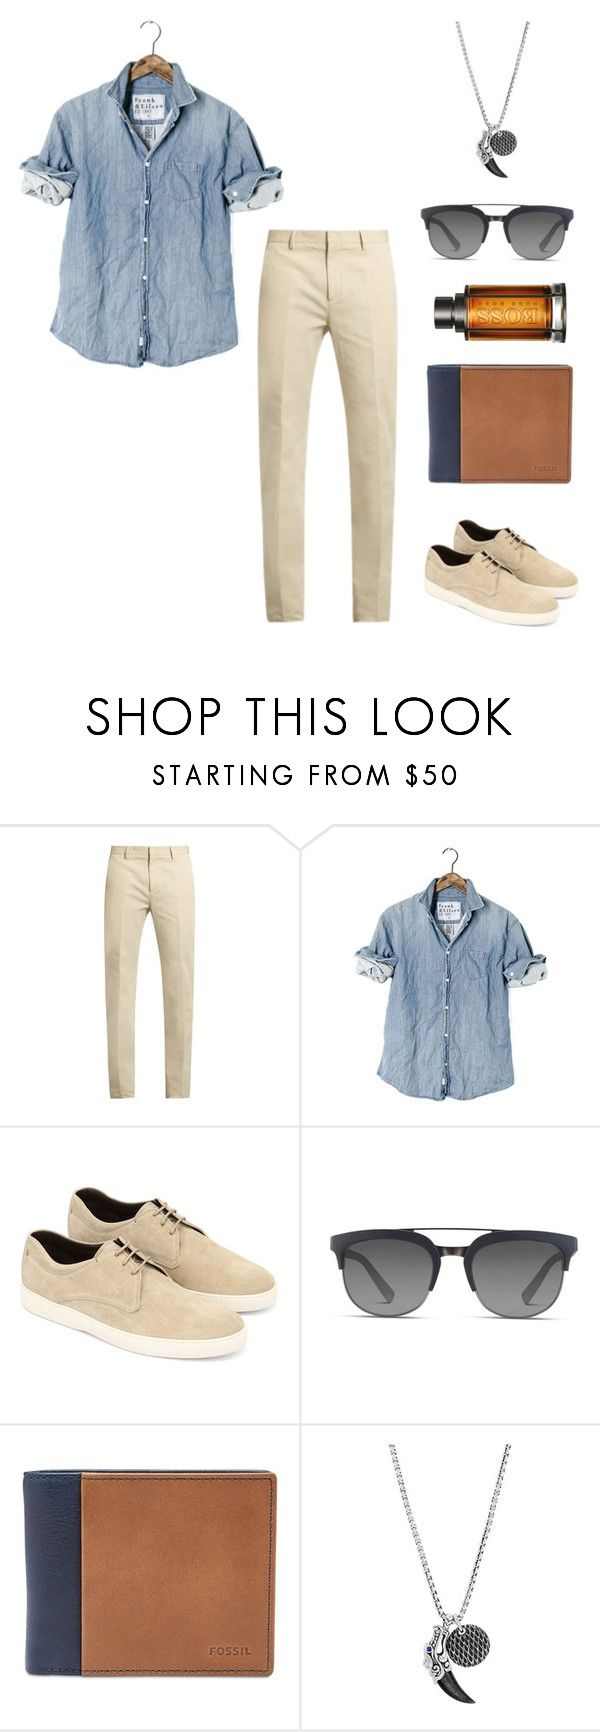 """Come here lover boy!"" by jess-heppell-designer on Polyvore featuring Calvin Klein Collection, Tod's, Dolce&Gabbana, FOSSIL, John Hardy, BOSS Hugo Boss, men's fashion and menswear"